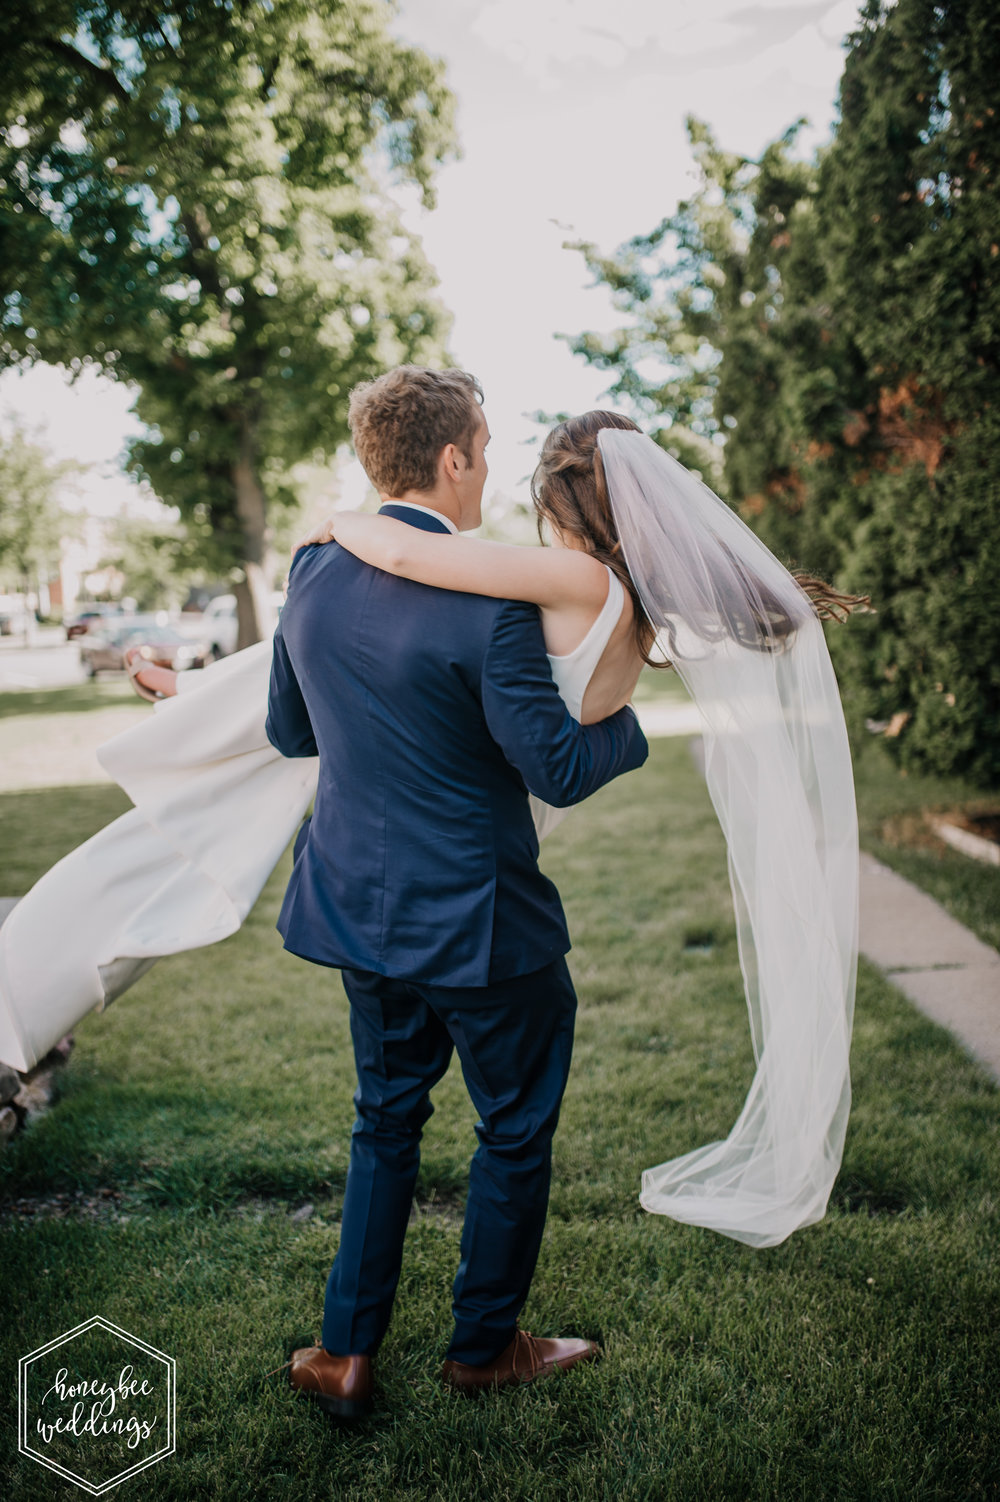 237 Montana Wedding Photographer_St. Francis Wedding_Tifani Zanto + Ryan Burke -6895.jpg